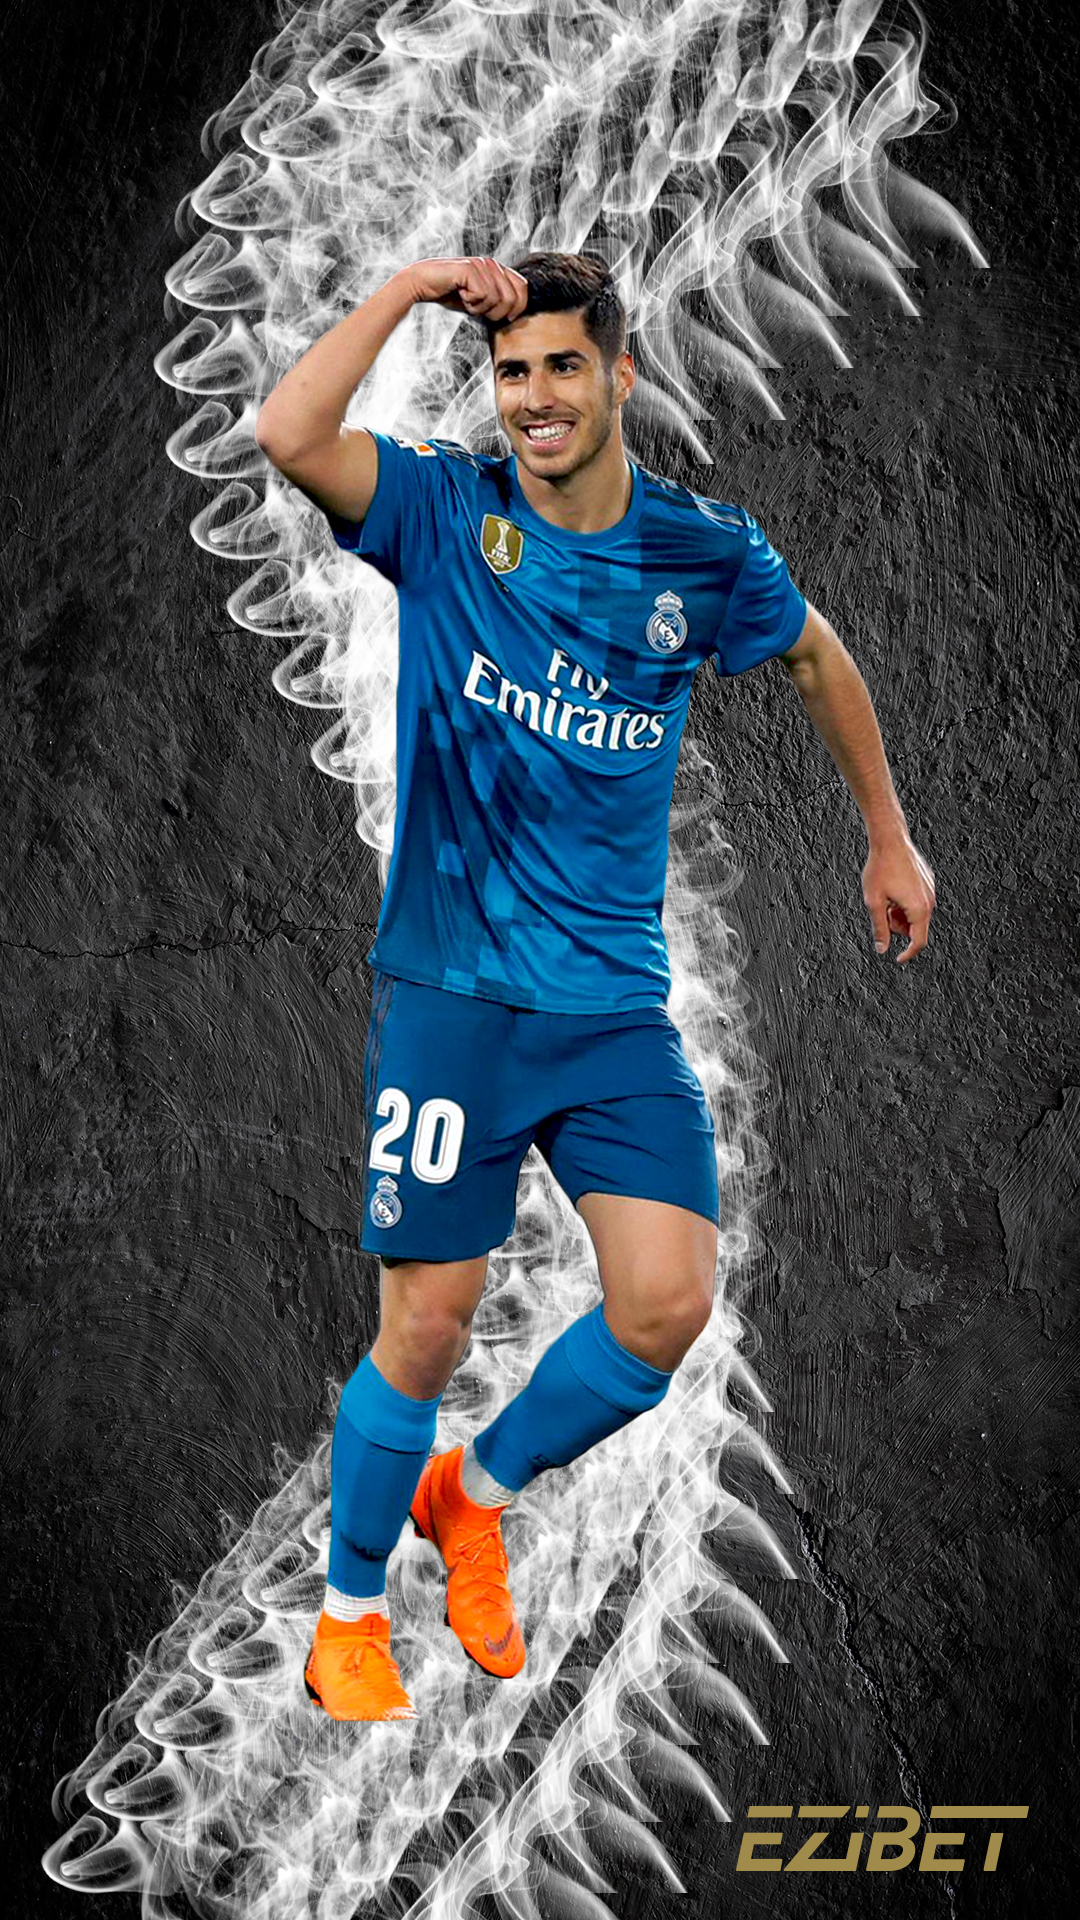 Ezibet mobile wallpapers ASENSIO.jpg